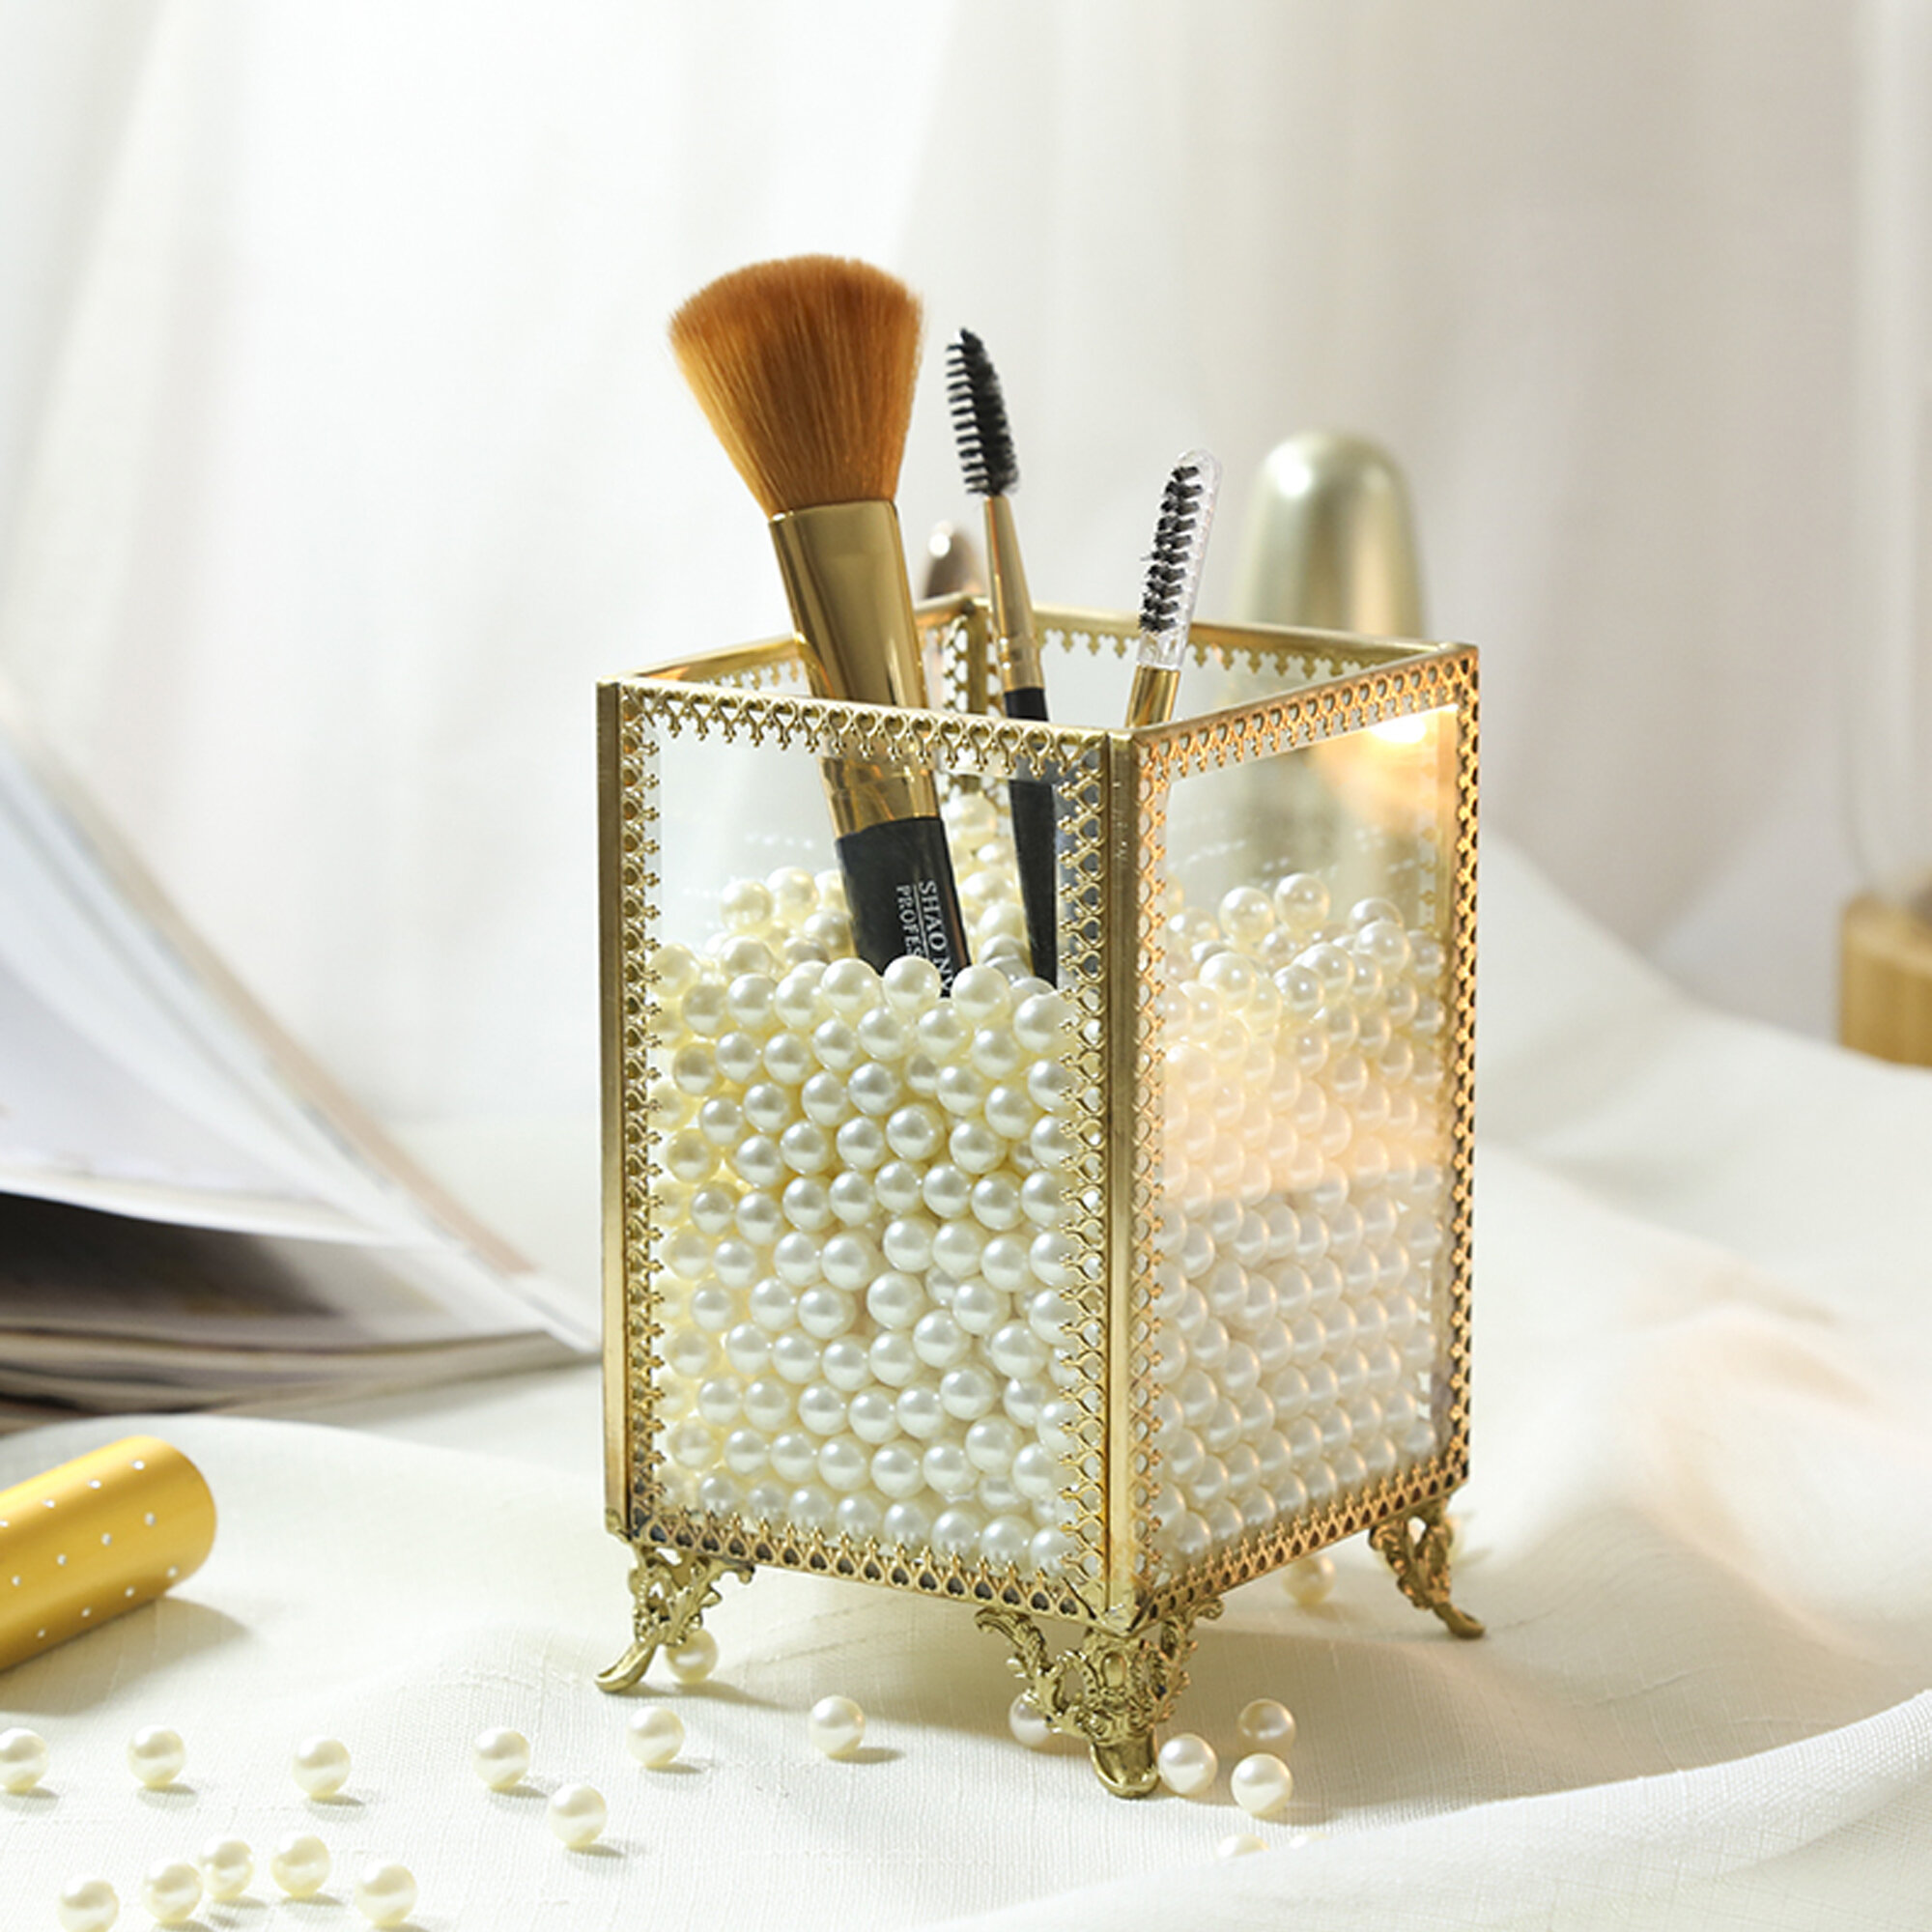 719a08194683 Condon Glass and Pearls Brush Holder Cosmetic Organizer.